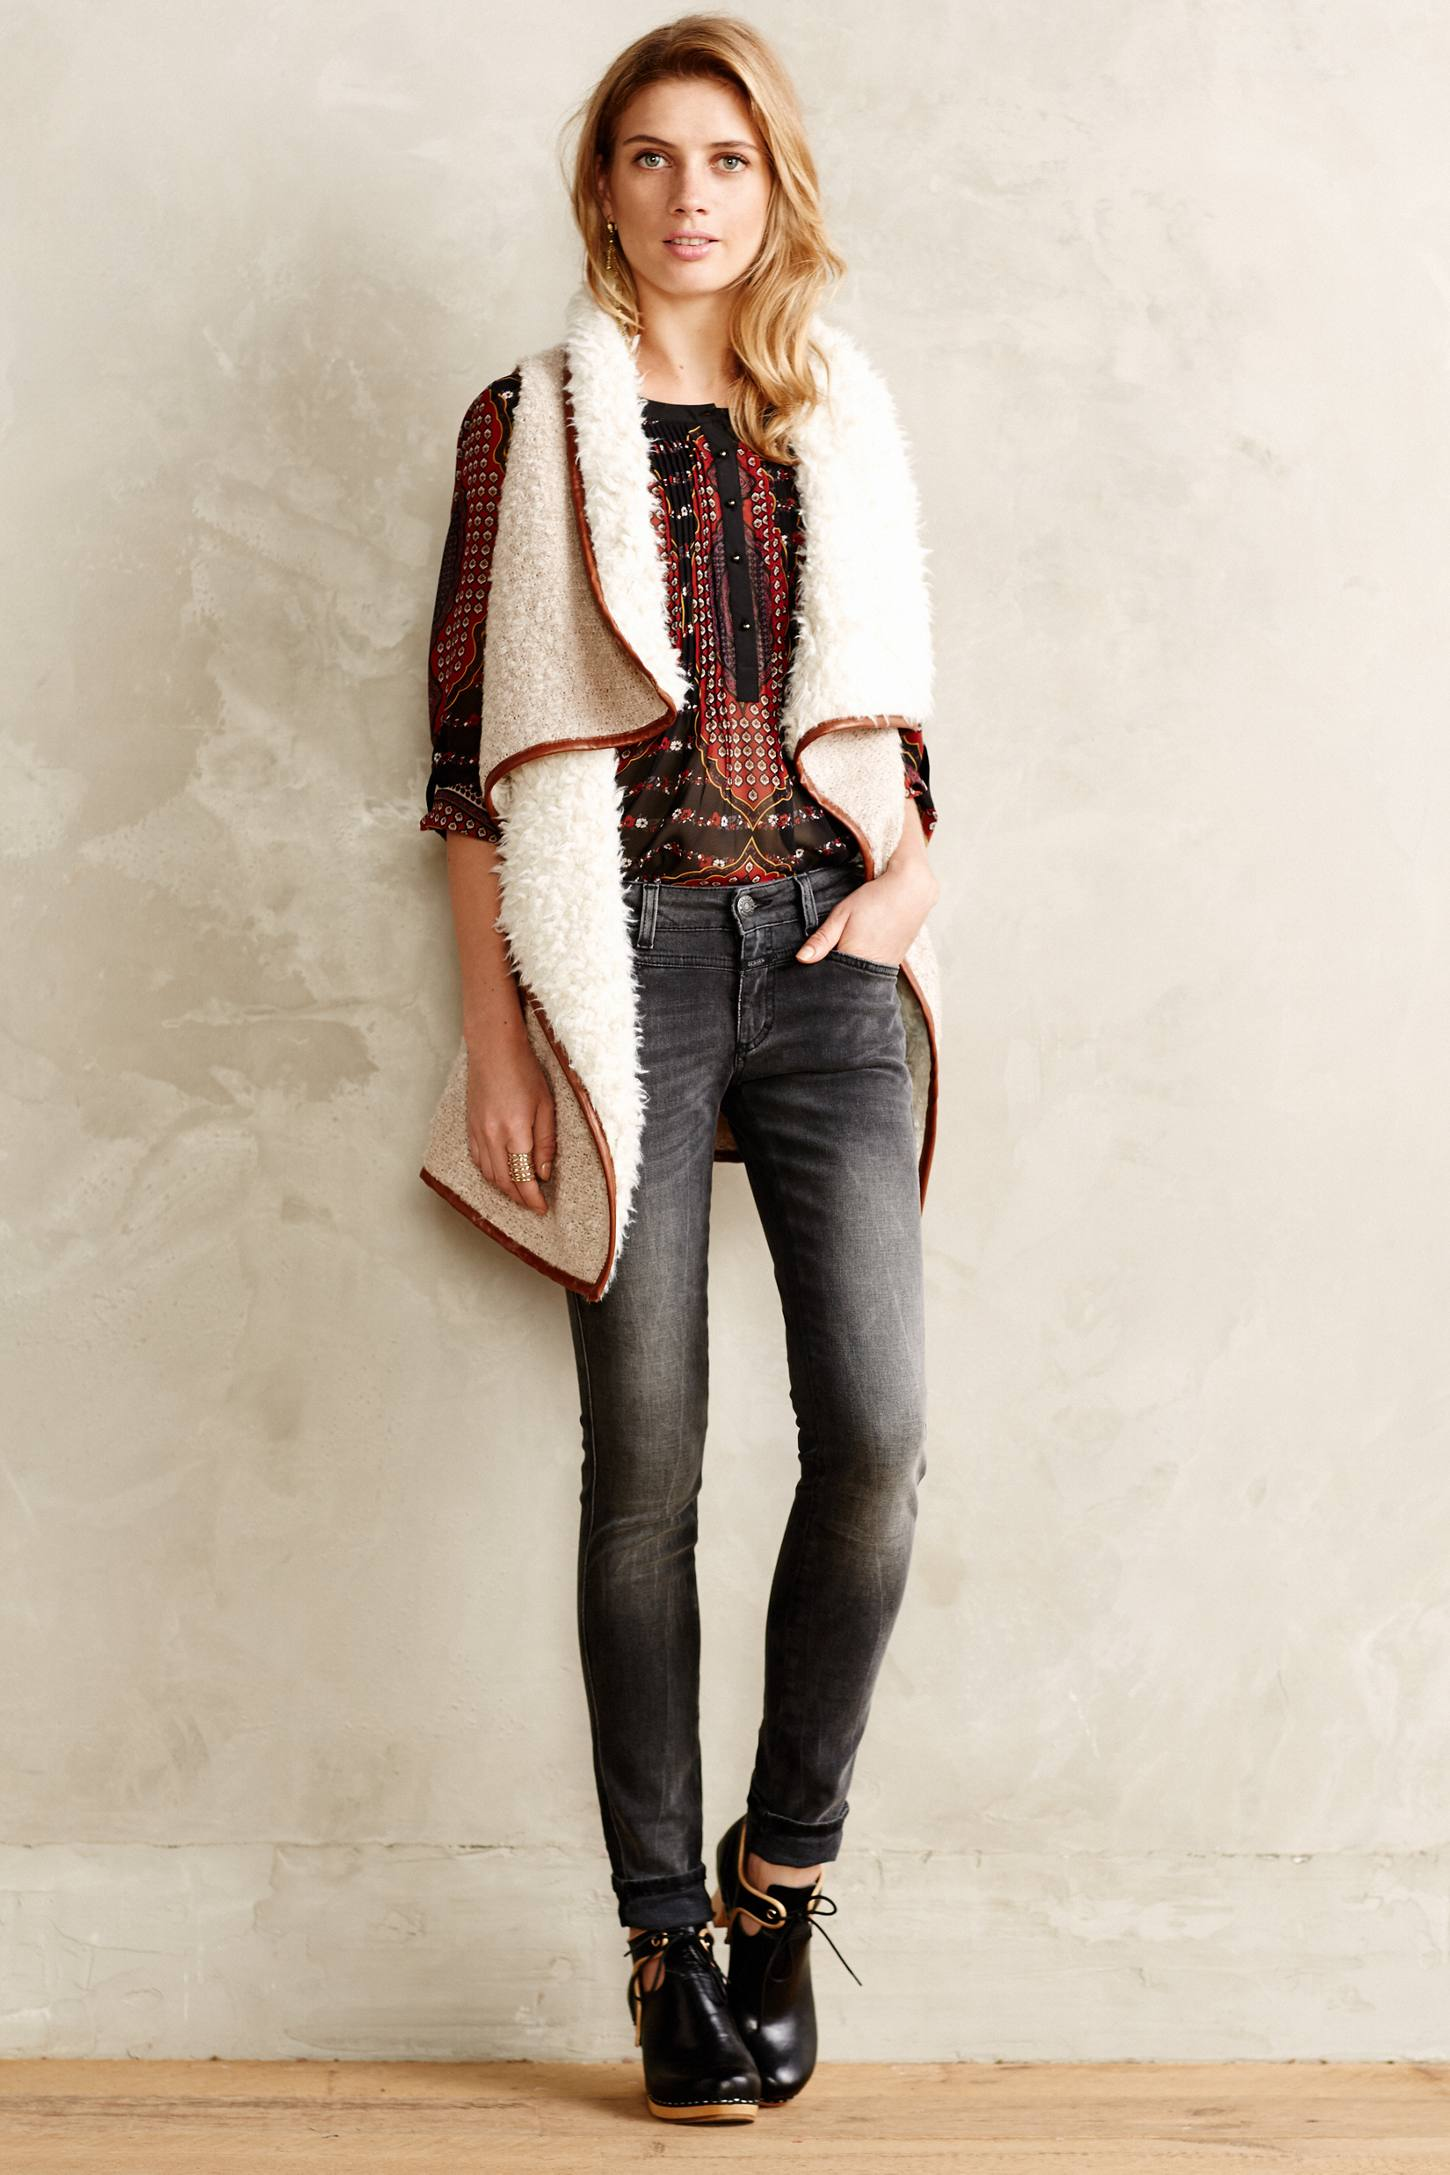 grayd-skinny-jeans-red-top-blouse-peasant-print-blonde-white-vest-knit-black-shoe-booties-fall-winter-lunch.jpg